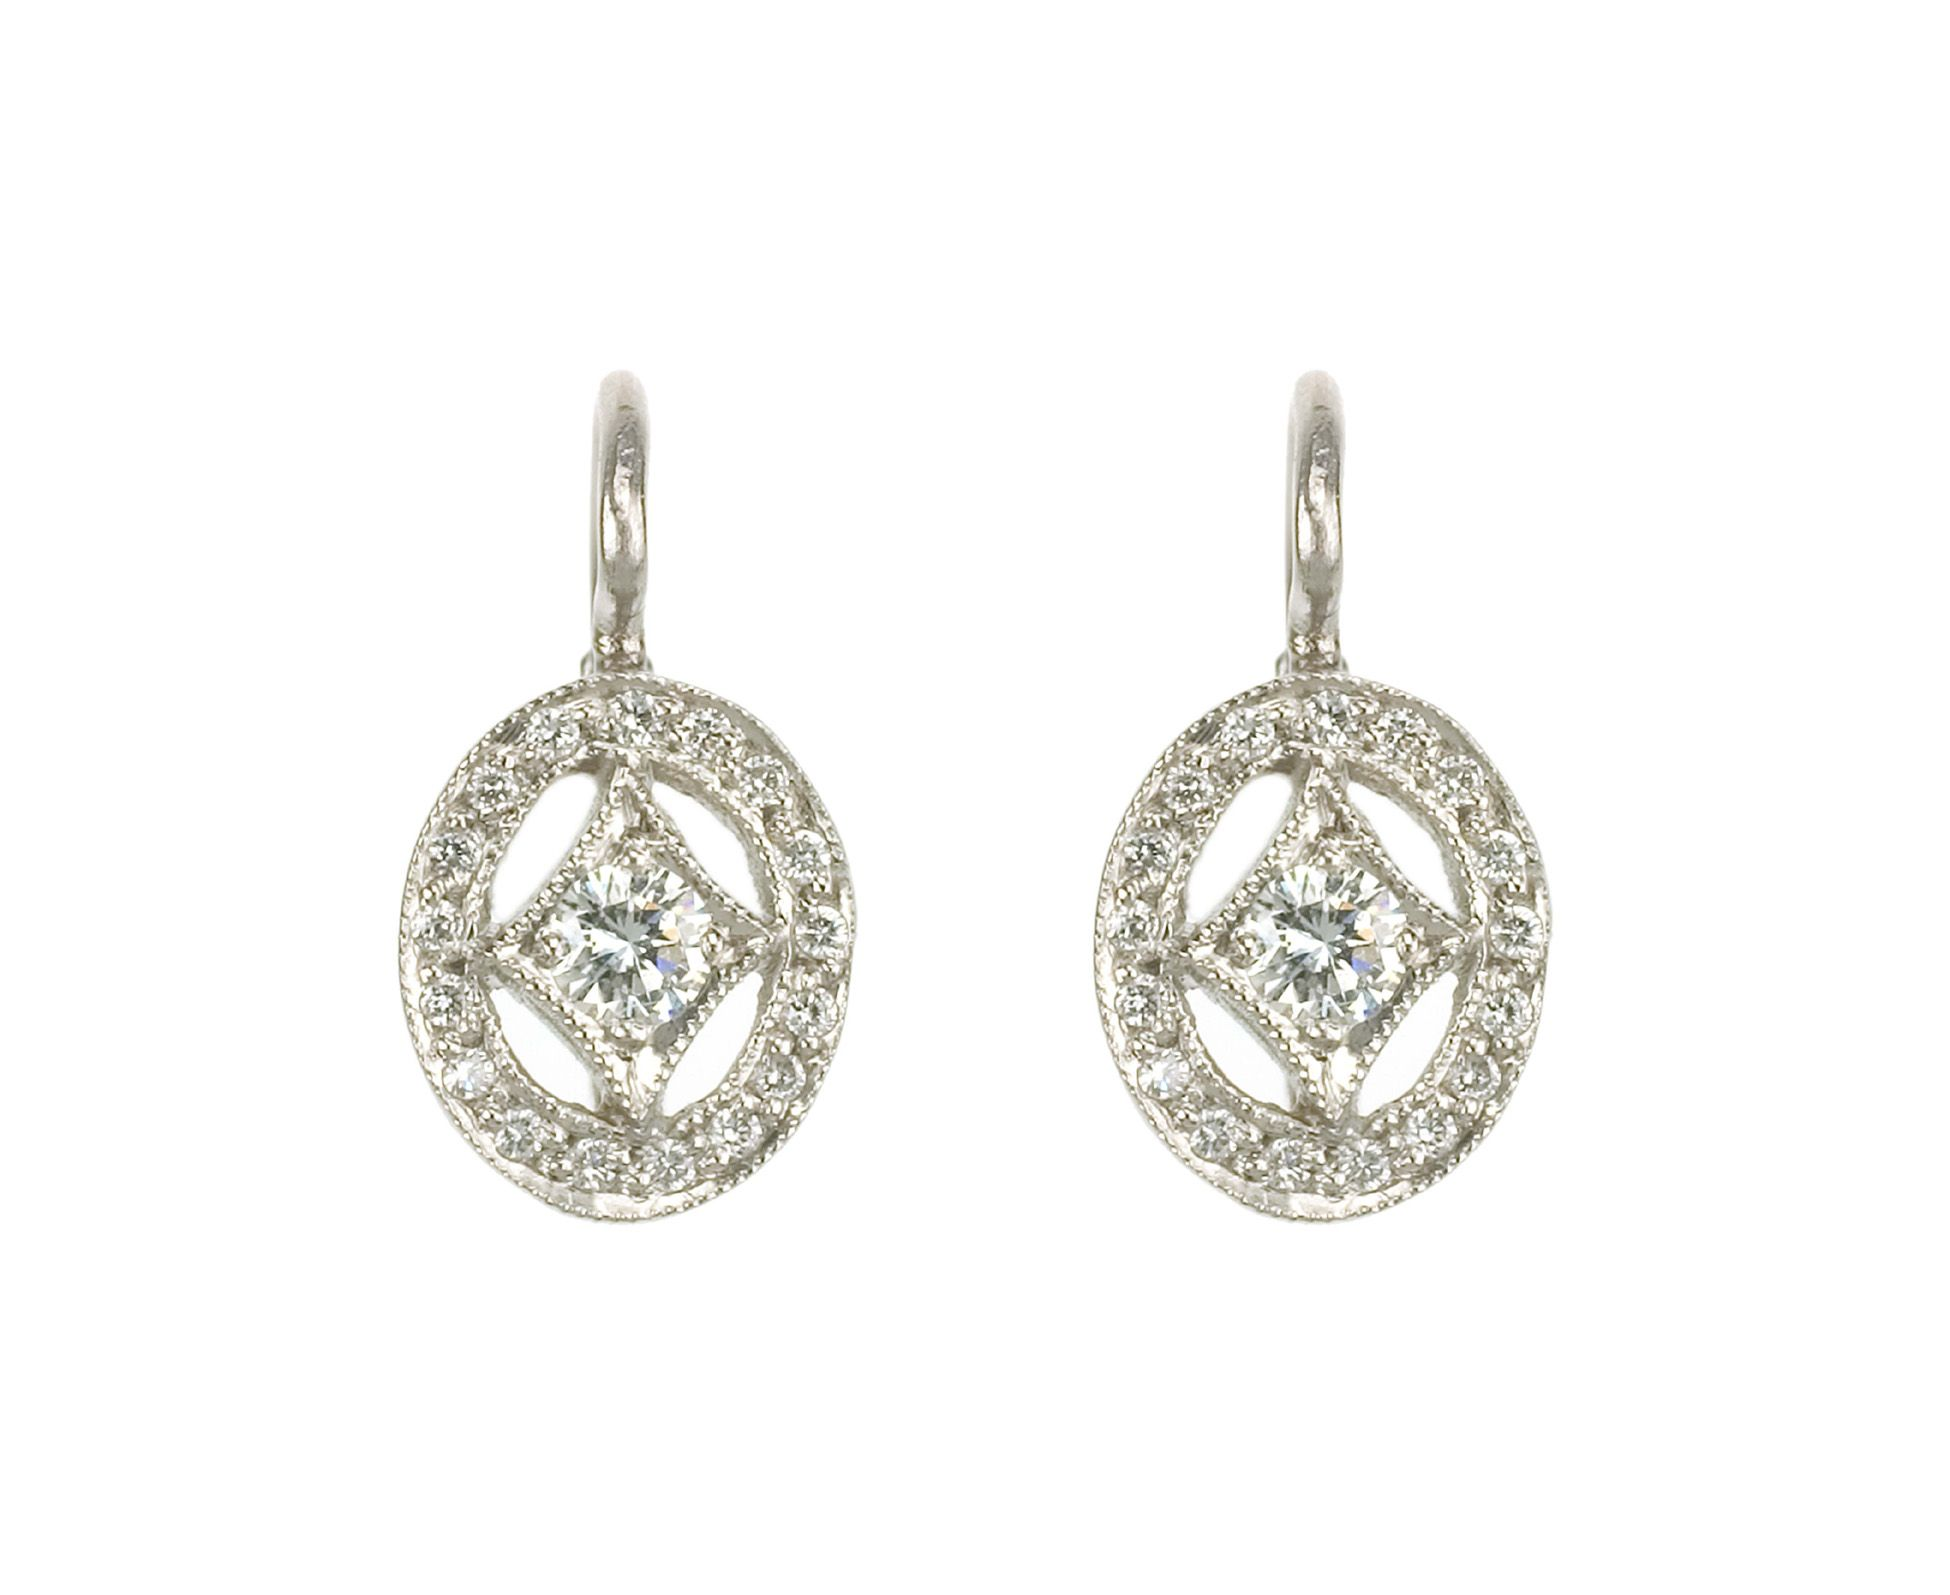 Oval Diamond Frame Earrings Cathy Waterman And Julia Roberts Lancôme